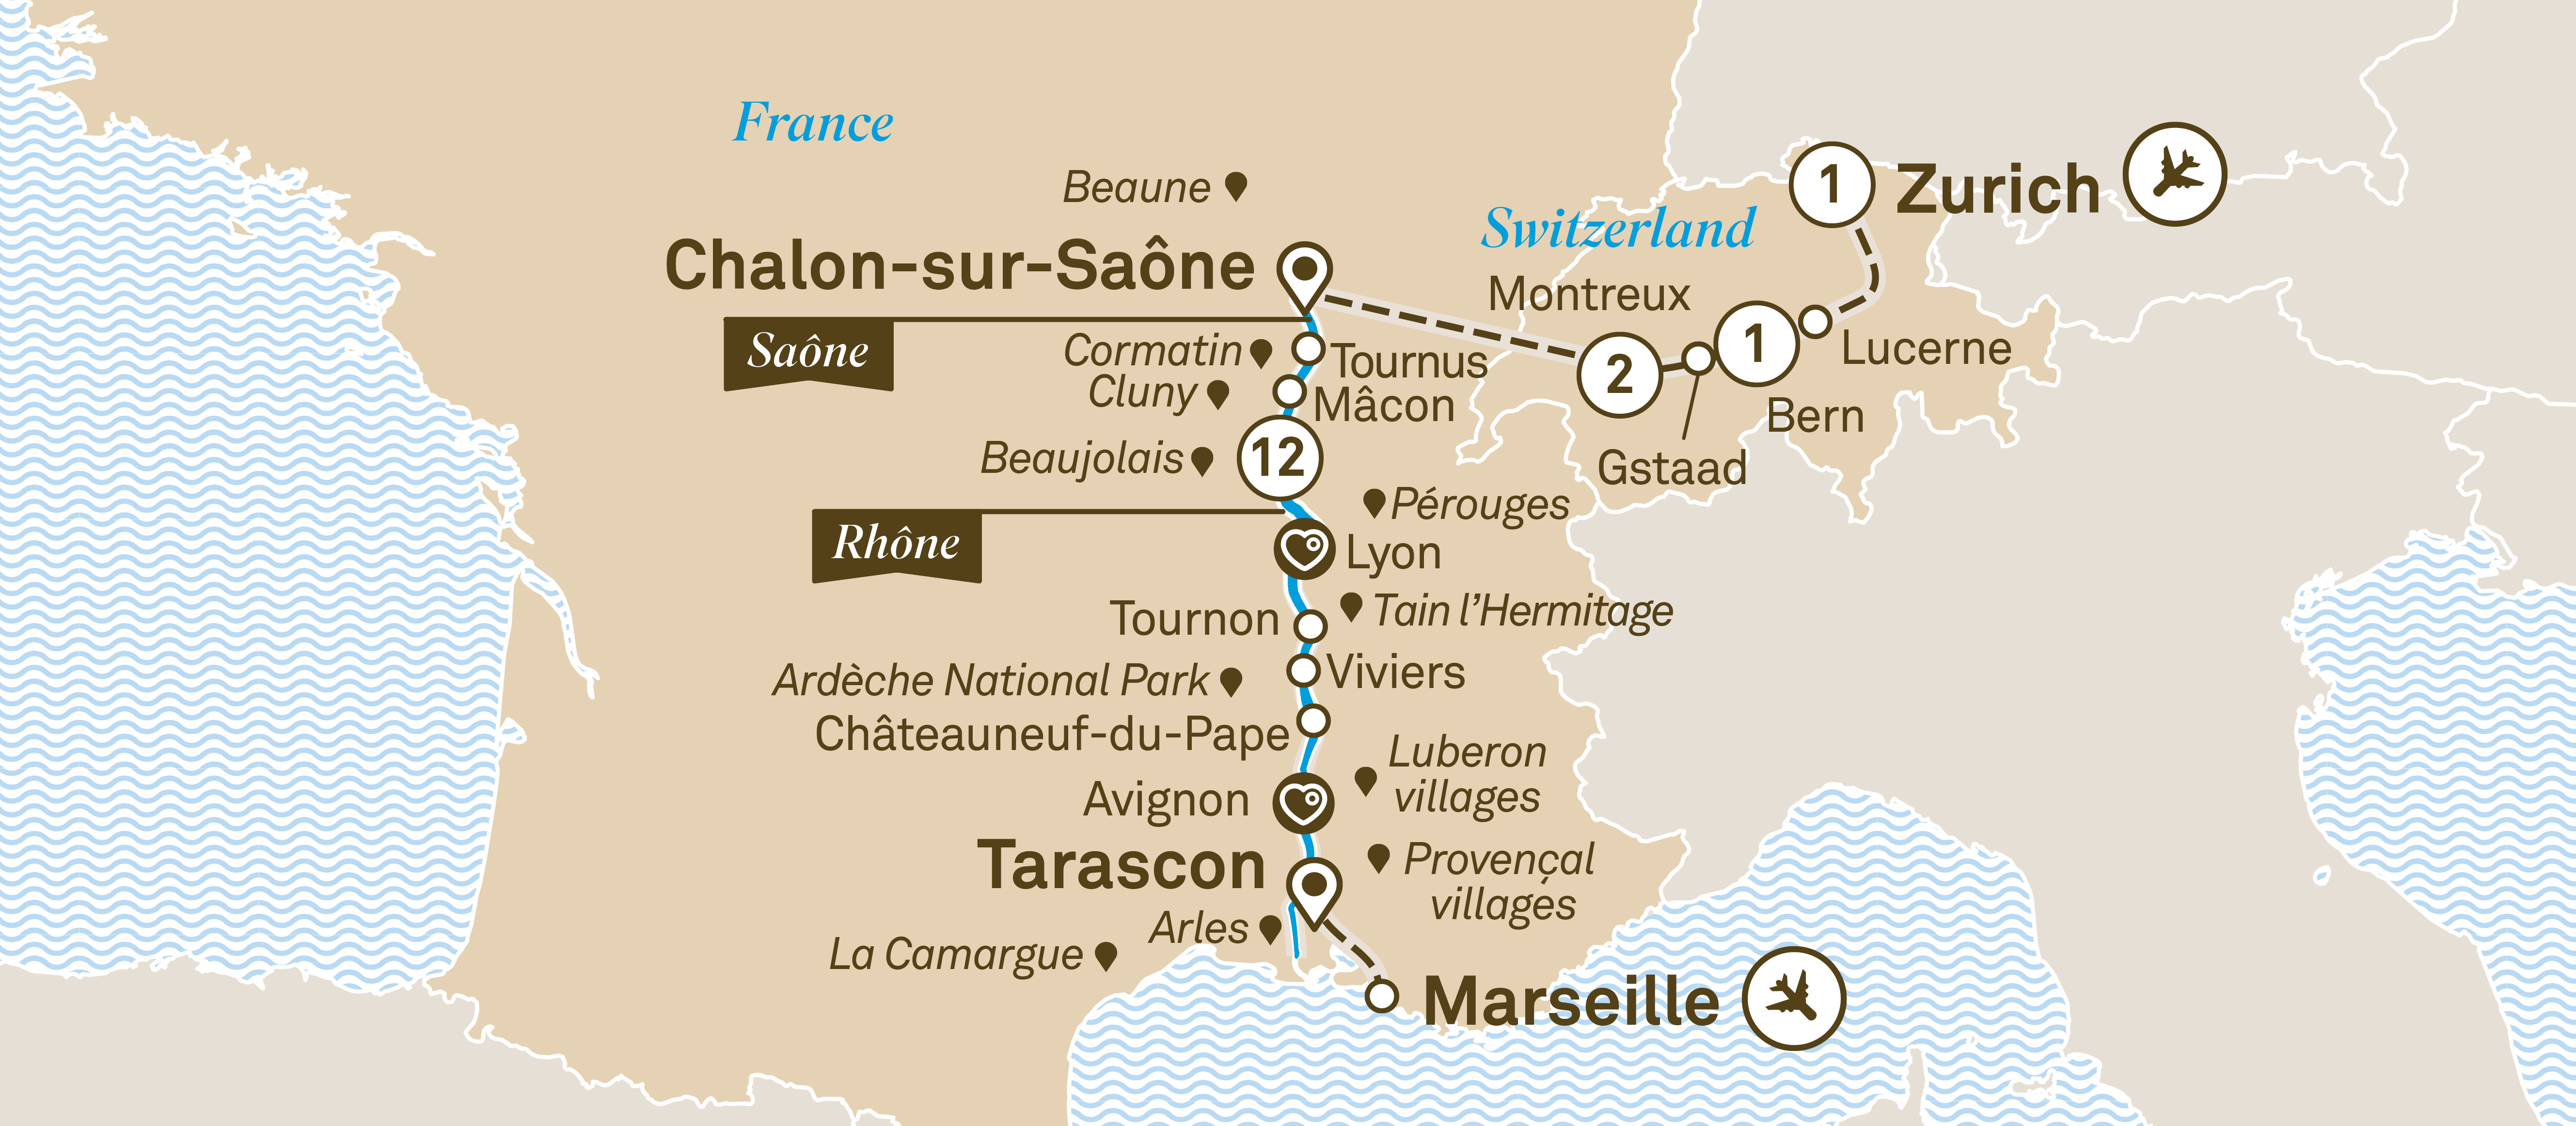 Itinerary map of South of France with Switzerland